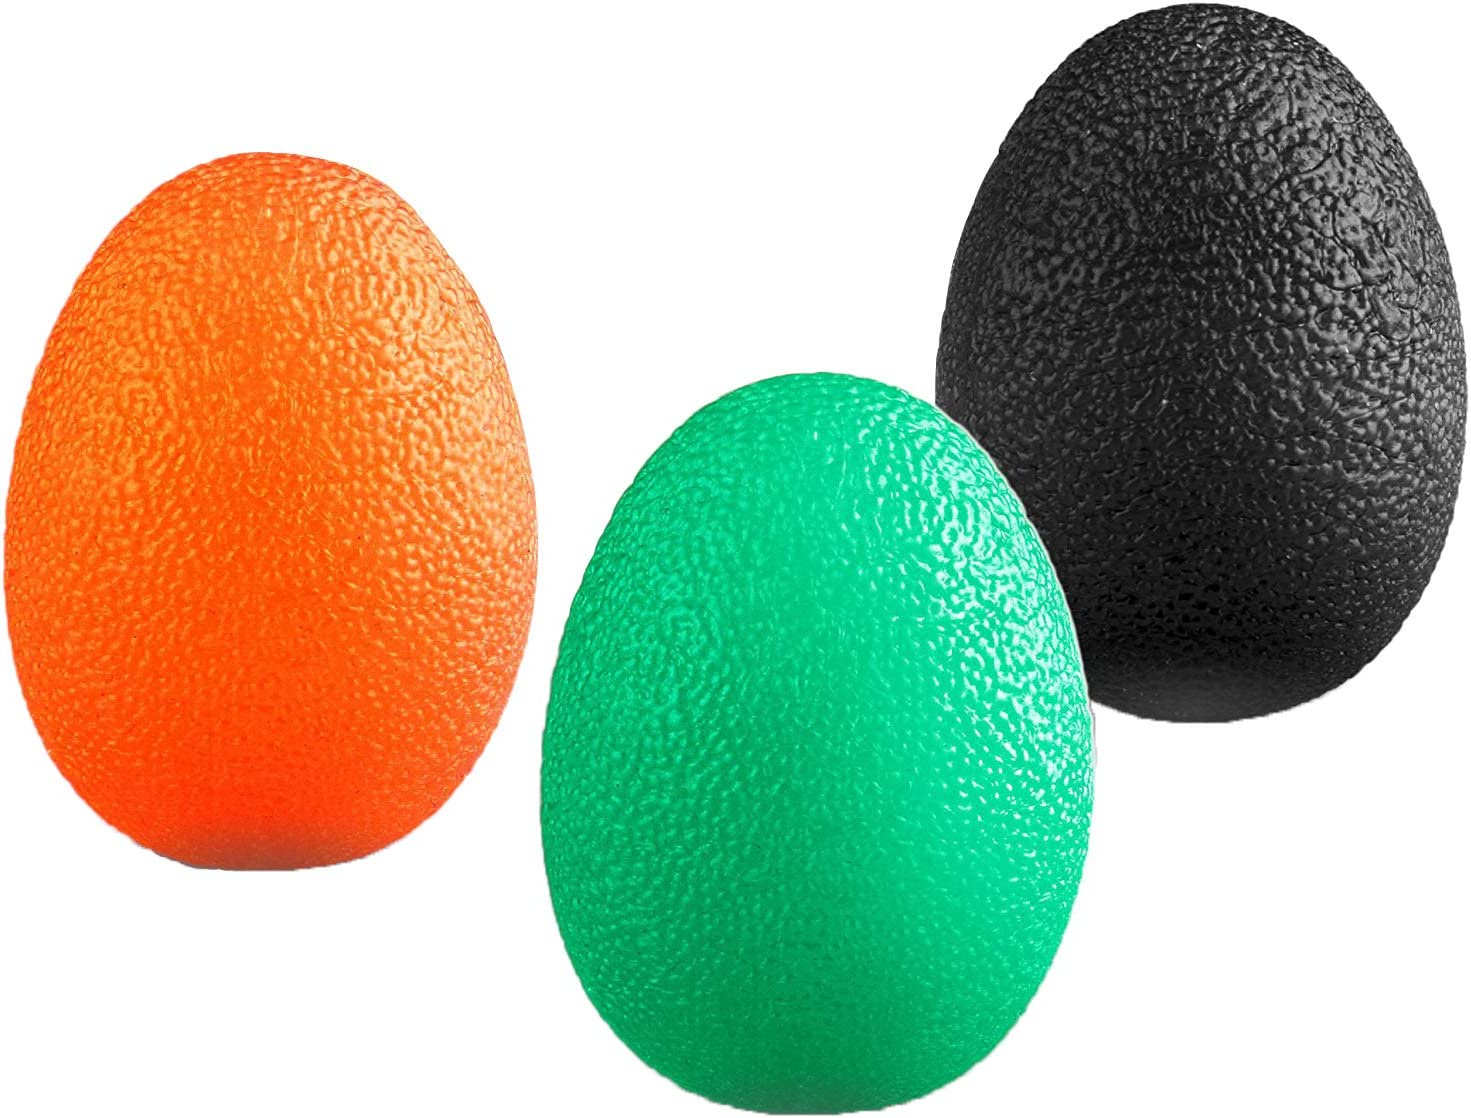 Buy Fitsy Stress Relief Squeeze Balls for Hand Grip Strengthening - Set of  3 Online at Low Prices in India - Amazon.in